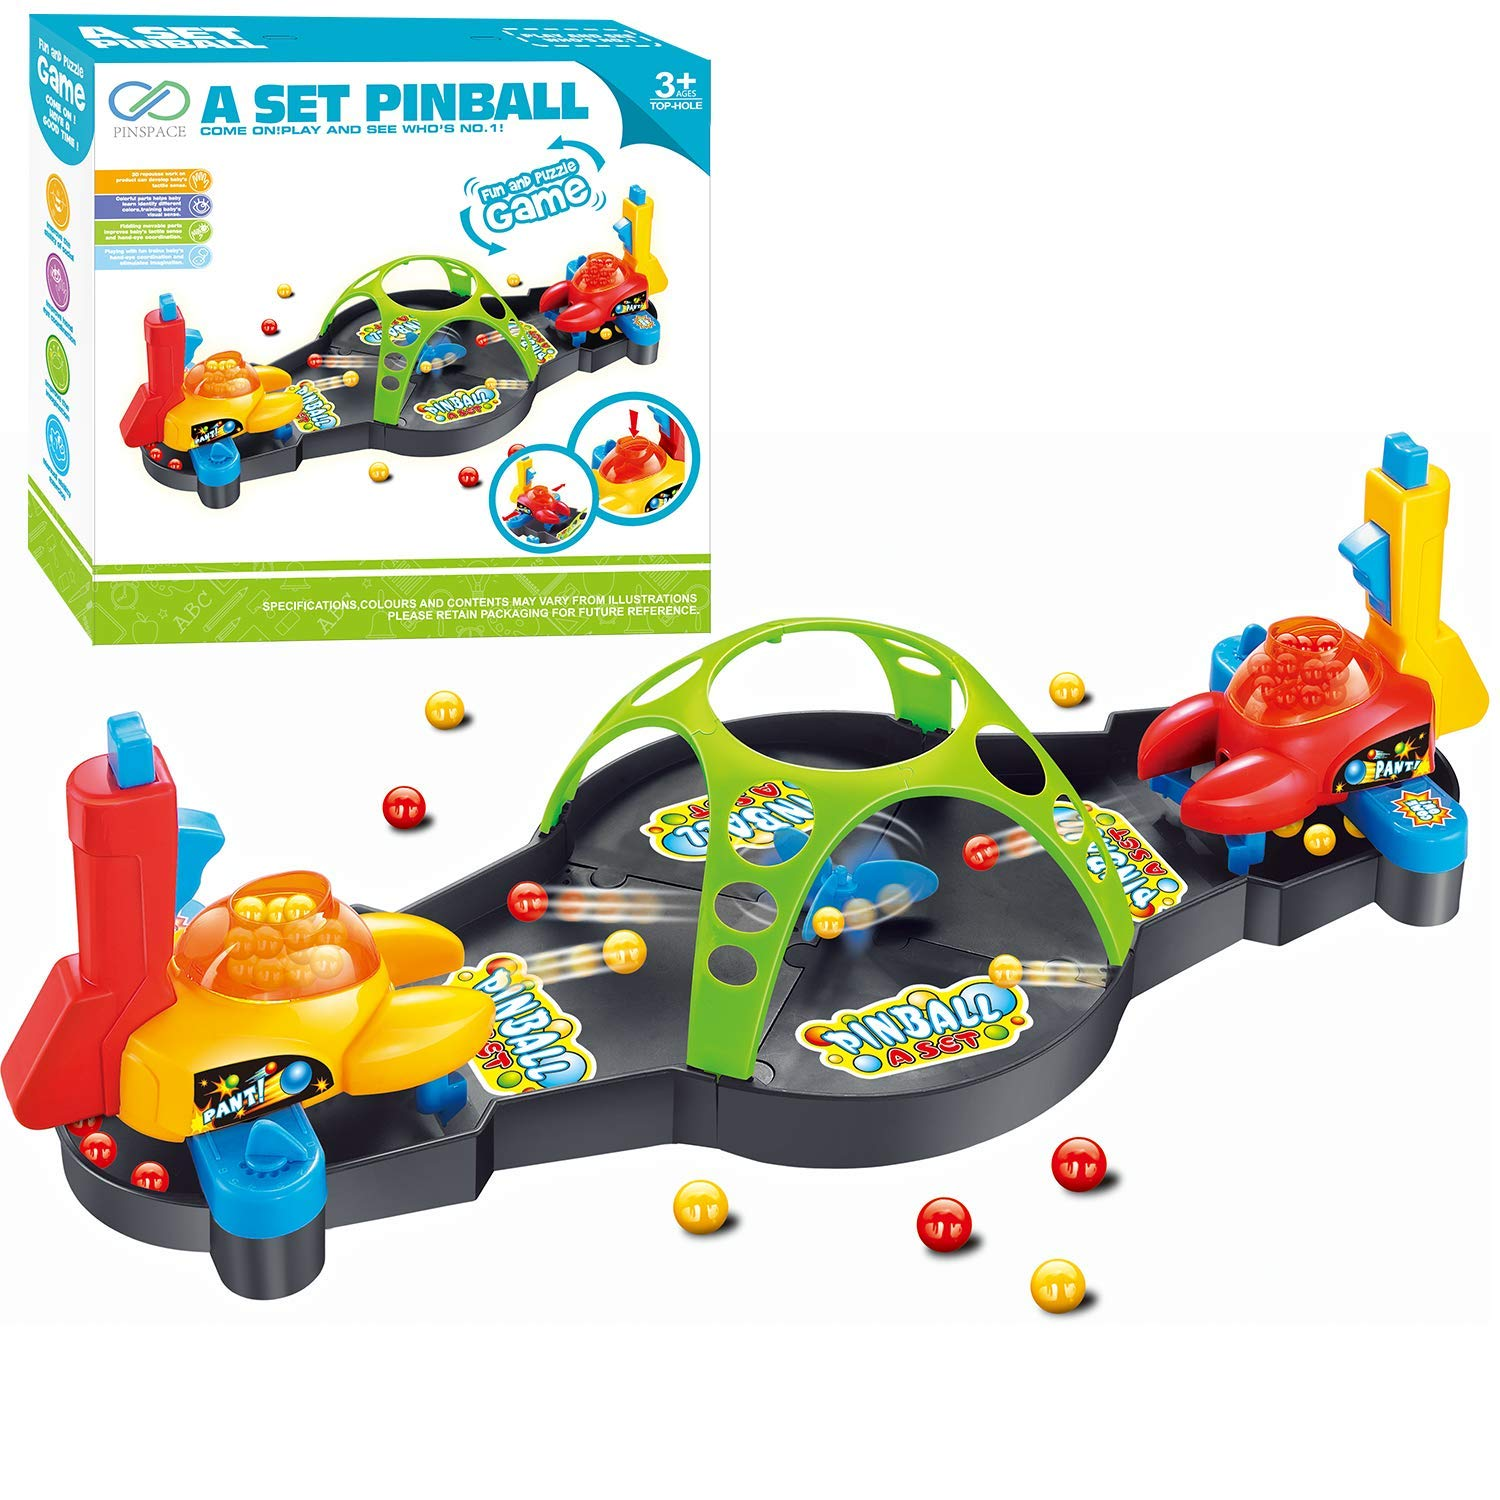 PinSpace Board Games for Kids, Pinball Game Set Fun Puzzle Toy Strategy Concentrated Game Board Family Party for Kids 3 Year and up, 2018 New by PinSpace